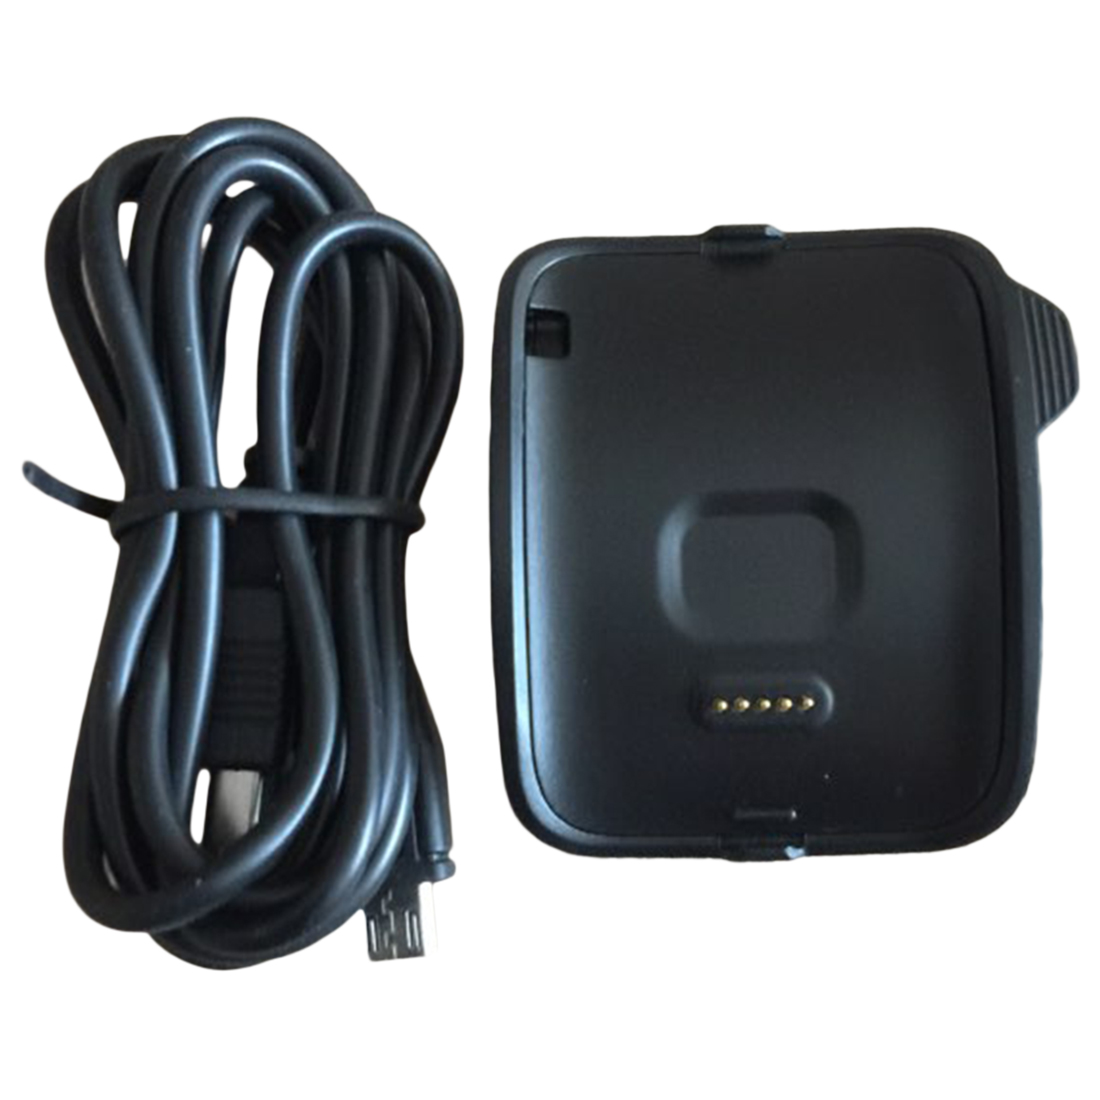 Centechia Top Quality quick charging with usb cable, Charging Dock Charger Cradle for Samsung Galaxy Gear S Smart Watch SM-R750